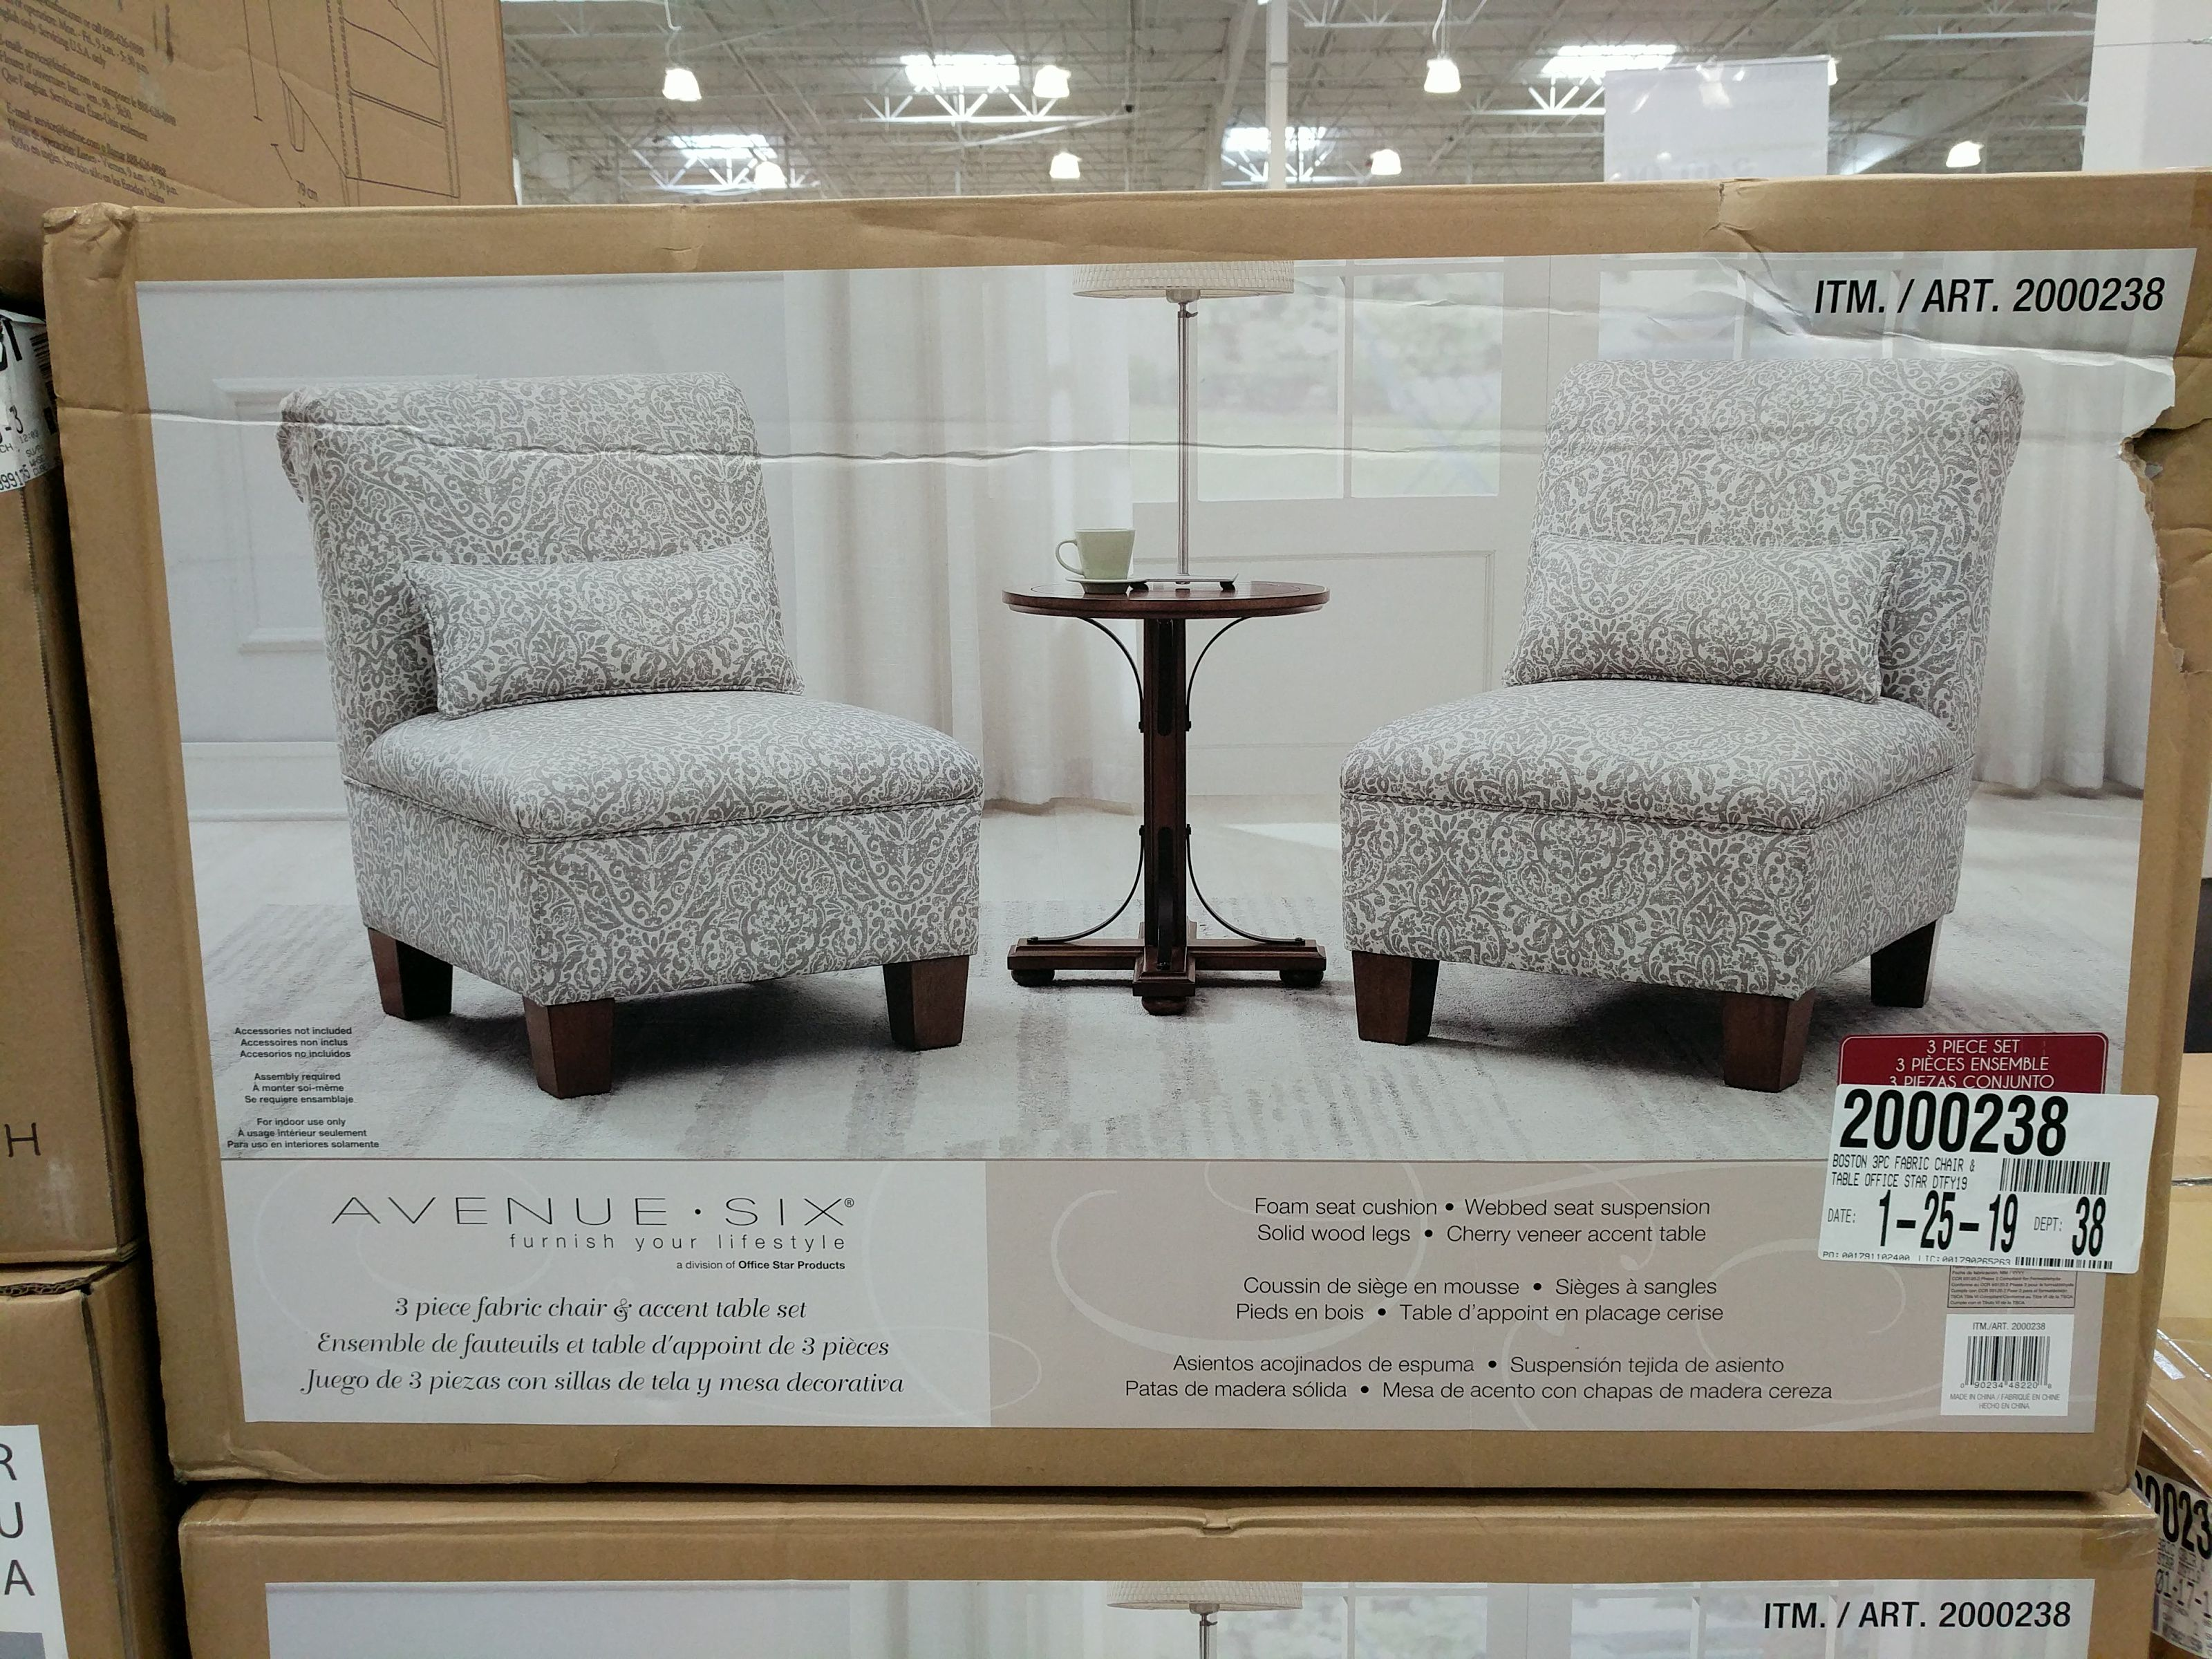 Avenue Six 3 Piece Fabric Chair Amp Accent Table Set 199